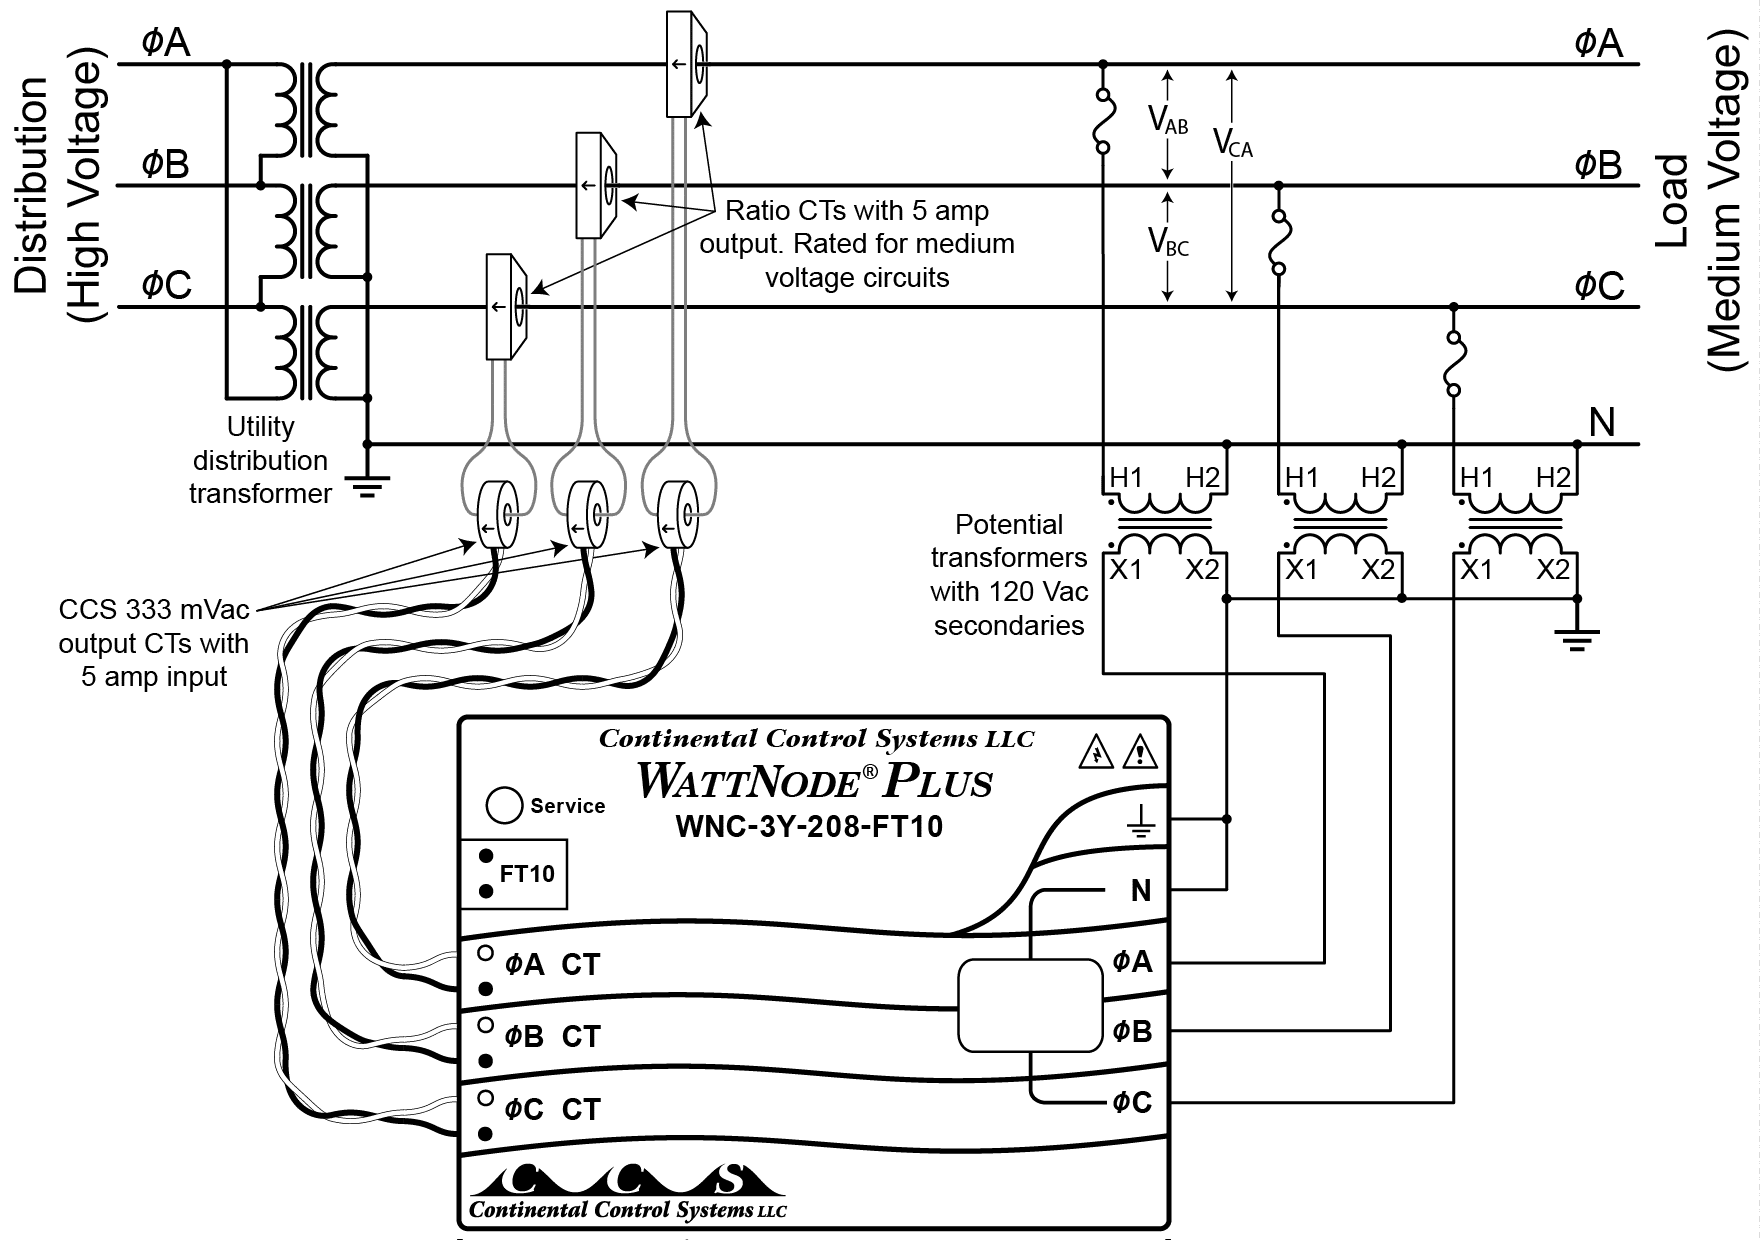 Residential Breaker Panel Wiring Diagram Library 110 Volt Box A Electric Meter Simple Detailed Home Electrical